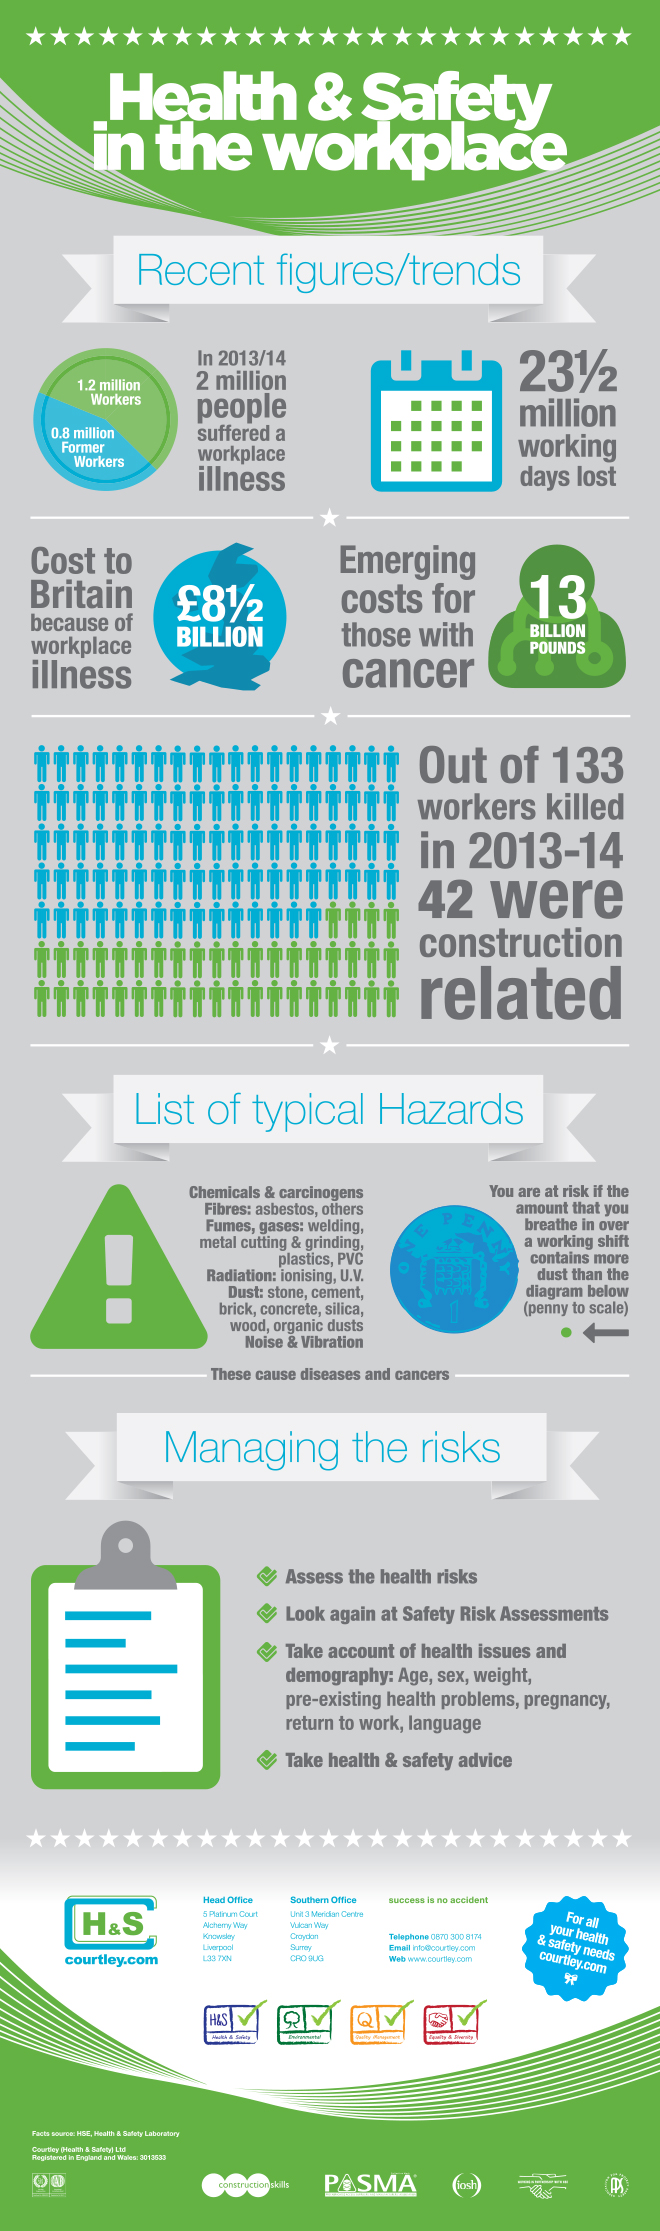 health and safety in the workplace infographic